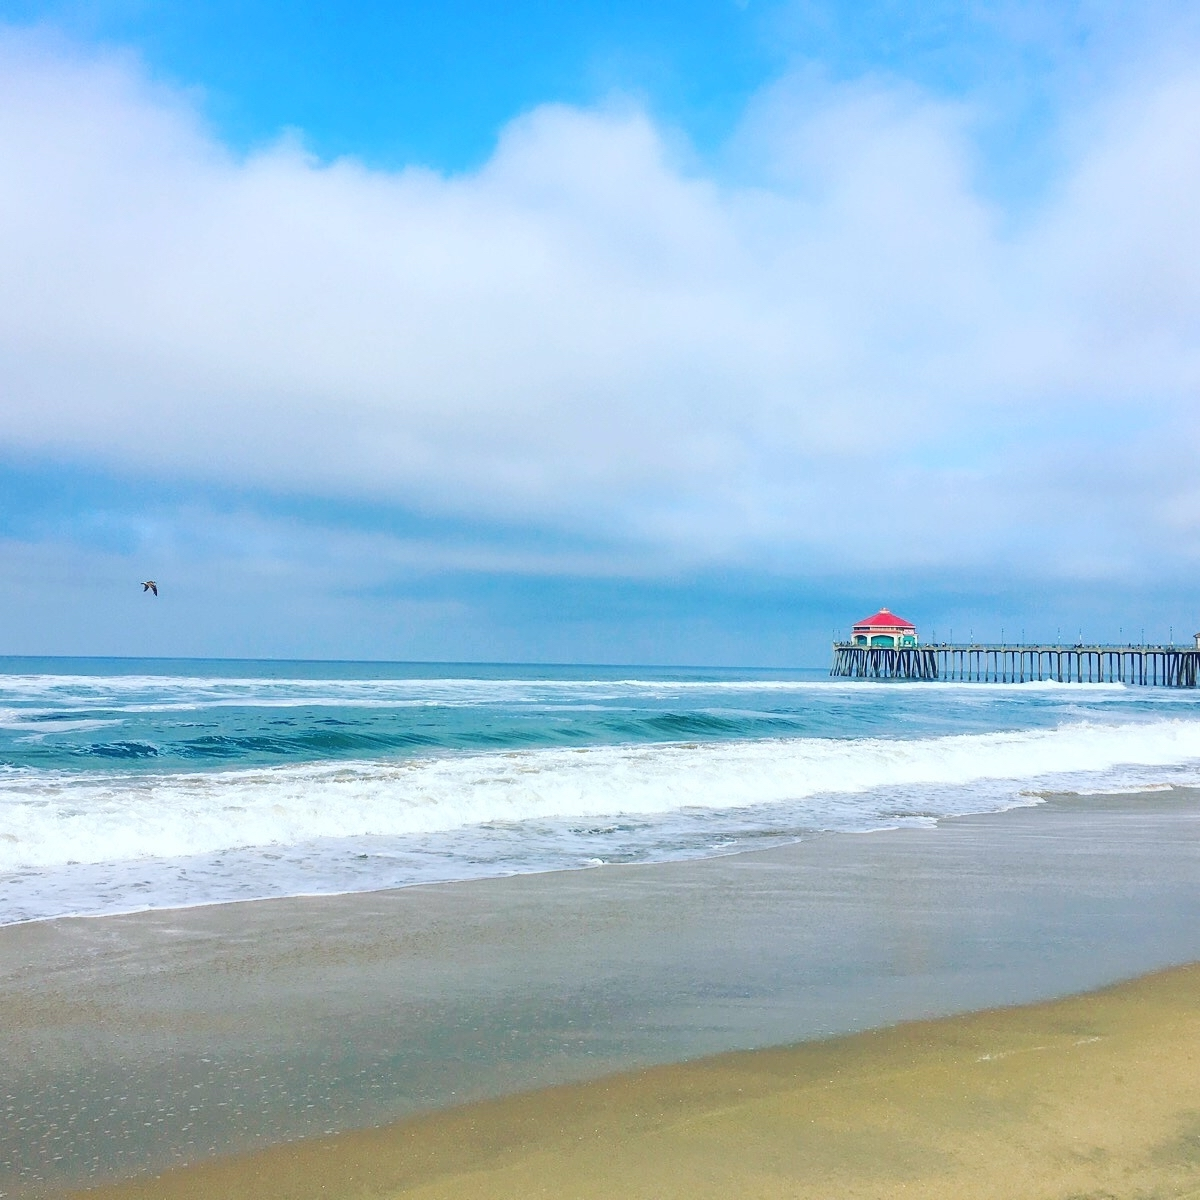 This is a photo of Huntington Beach's beach, with the pier in the background.